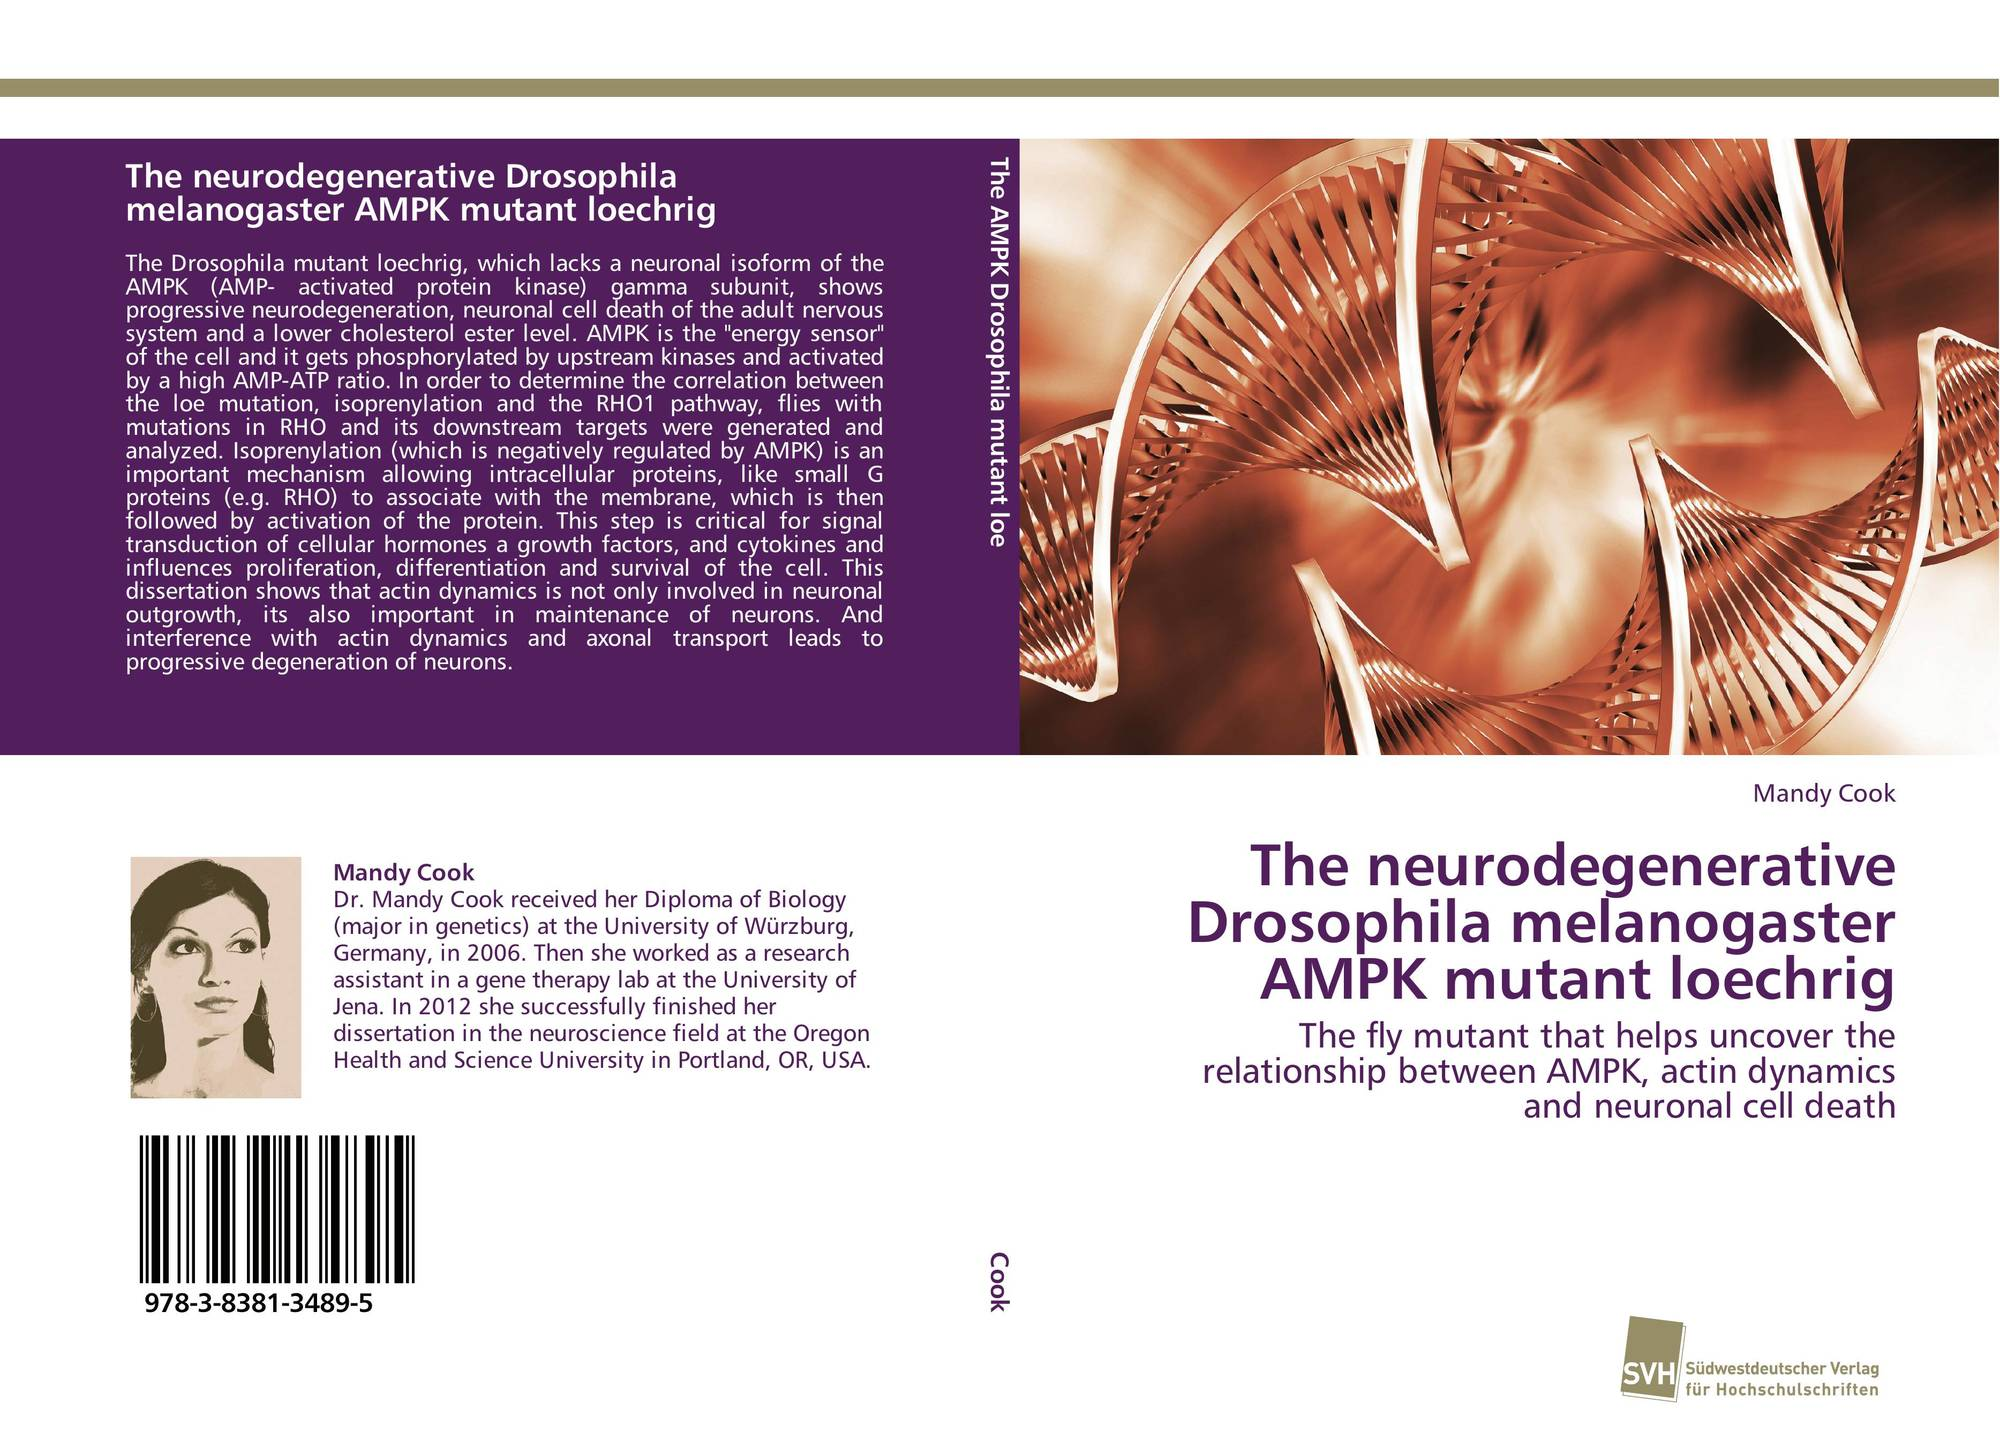 effect of ayurvedic drug on drosophila melanogaster Drosophila melanogaster, or the common fruit fly, is a species  triphala is an  ayurvedic herbal formation used for centuries in traditional indian medicine   prior research by the same team explored the effects of this.